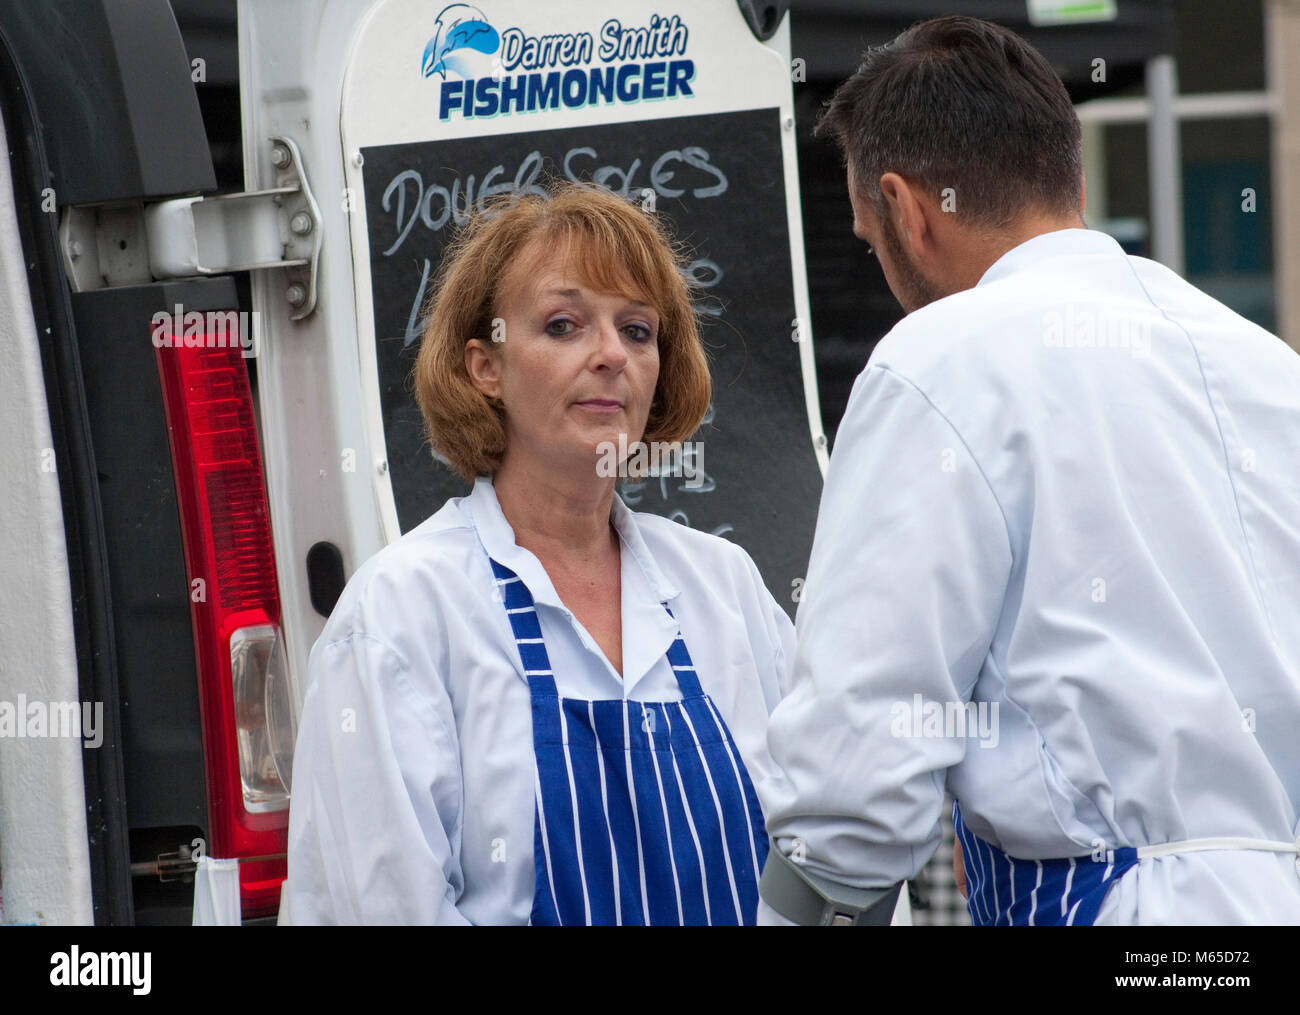 Woman in white coat and striped apron looks quizzically at the camera - Stock Image